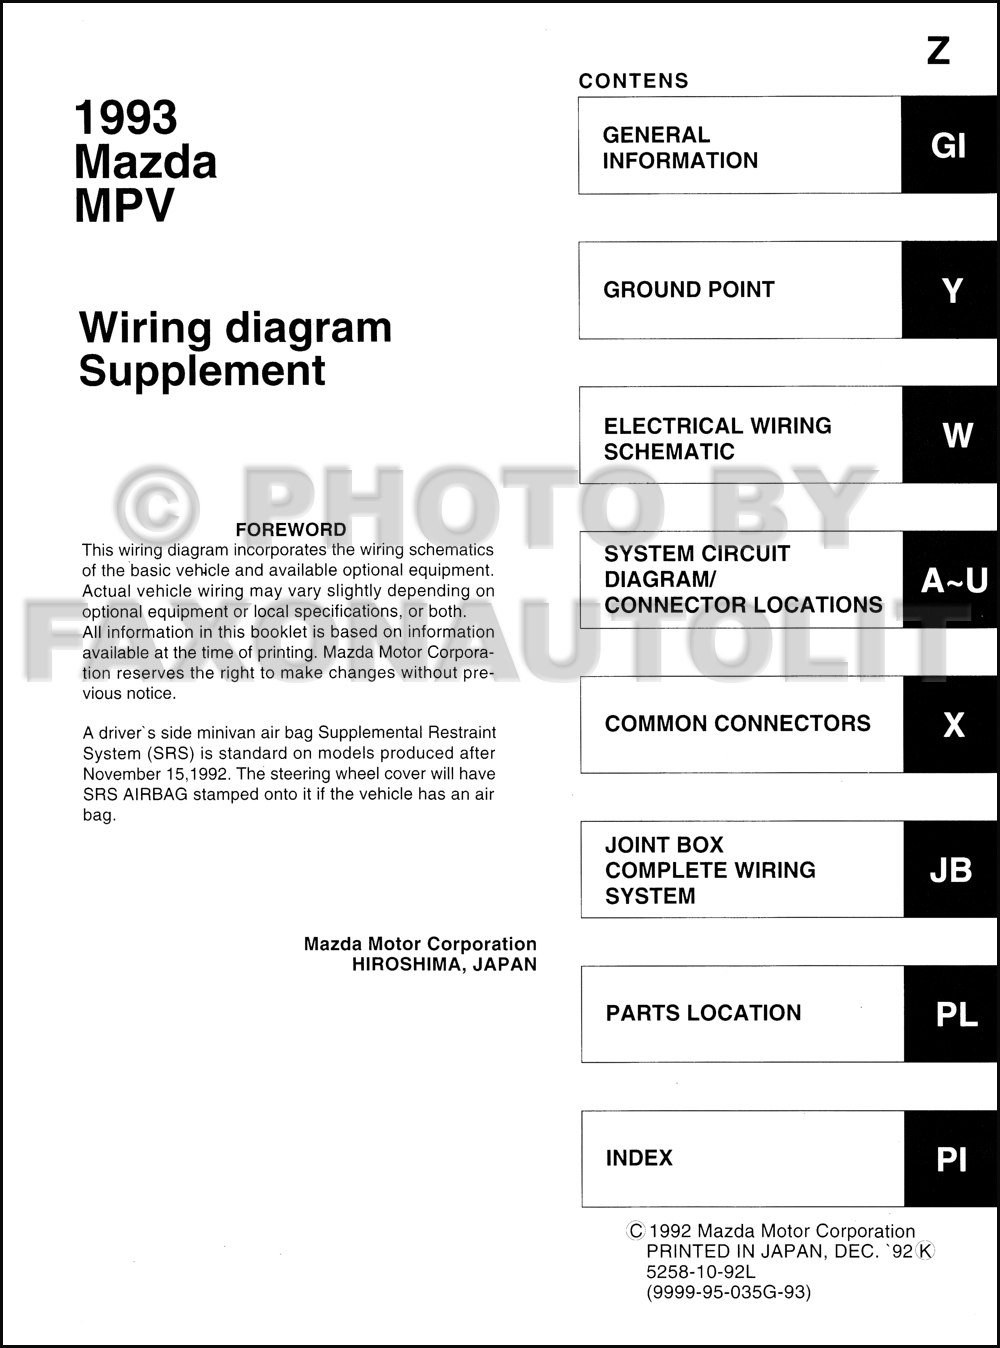 1993 Mazda Mpv Wiring Diagram Manual Original For Vans With Air Bag Click On Thumbnail To Zoom